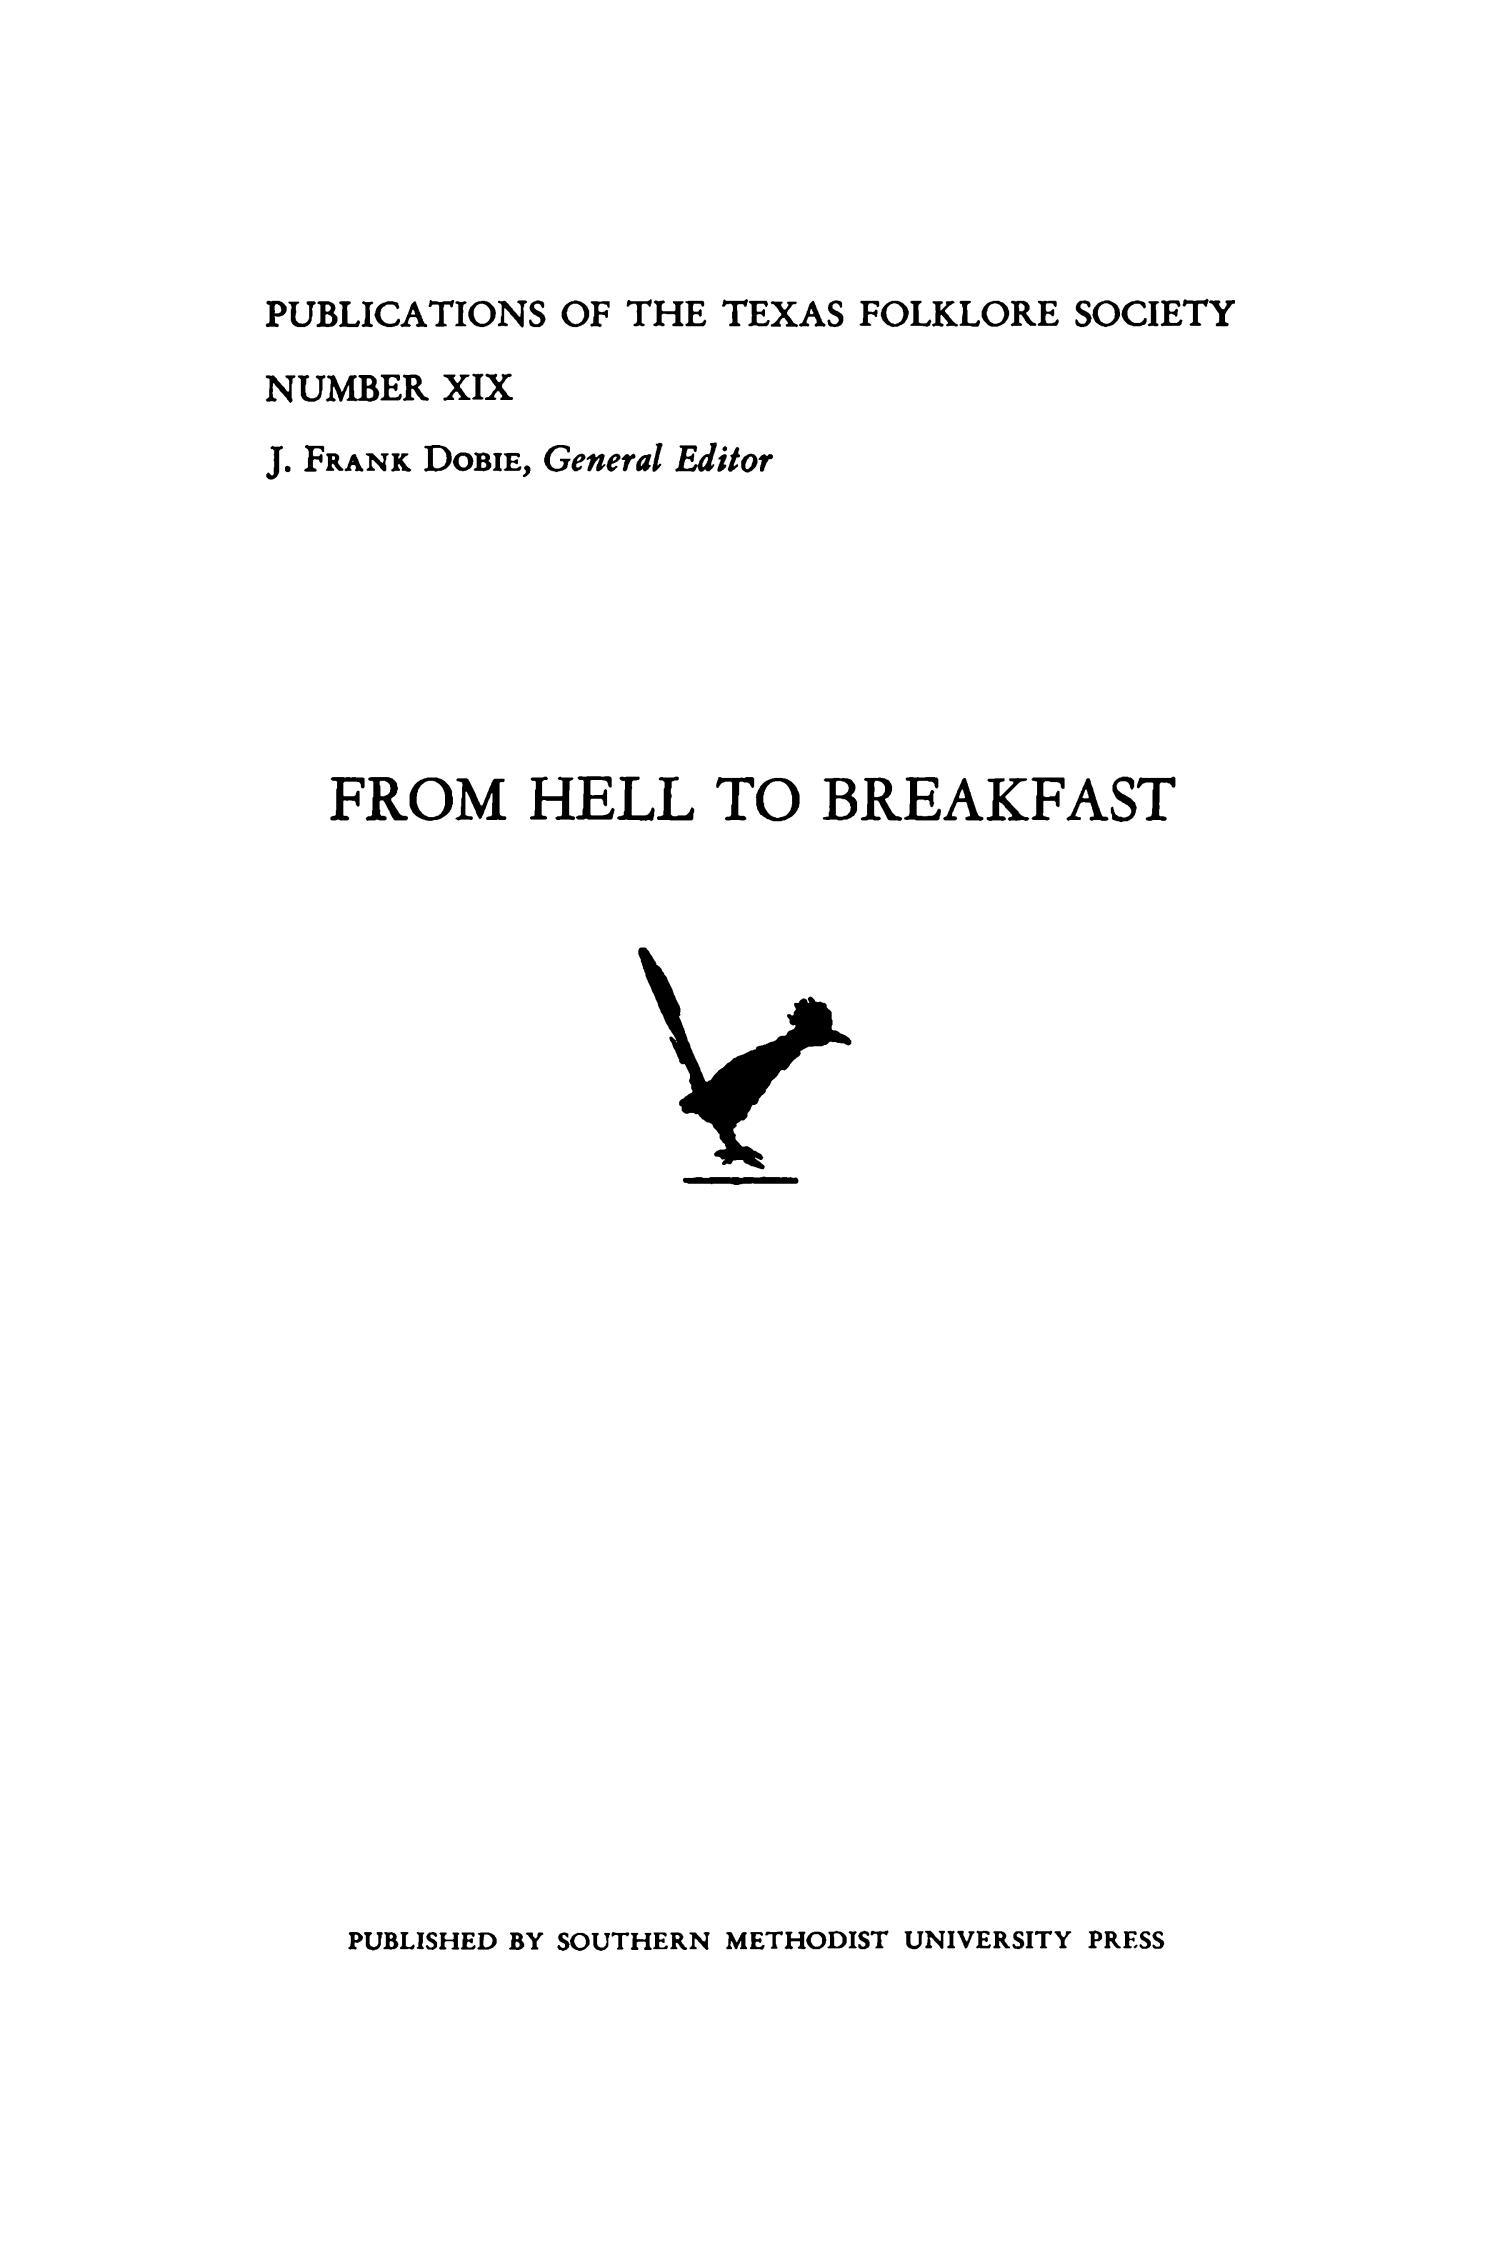 From Hell to Breakfast                                                                                                      None